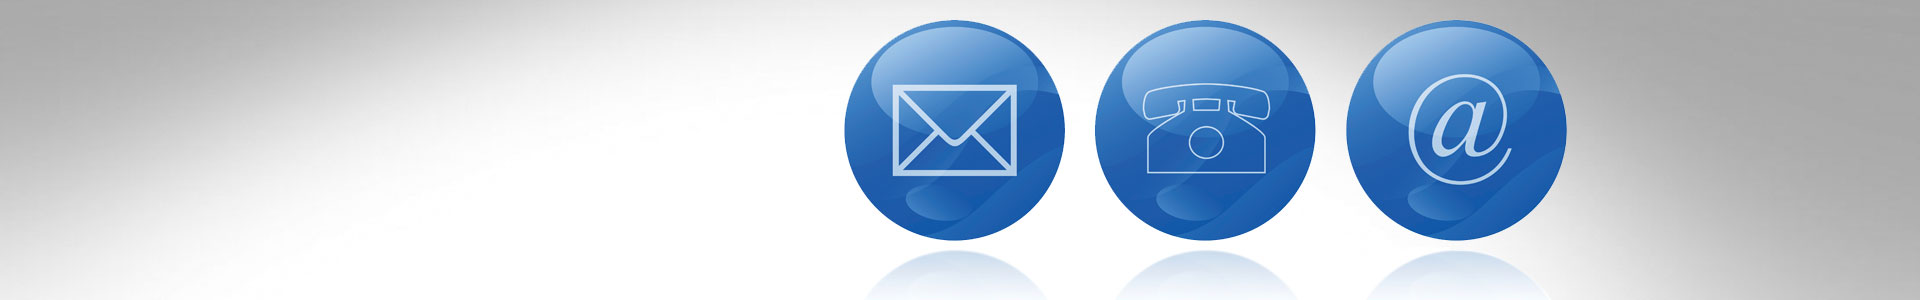 email phone and at symbols